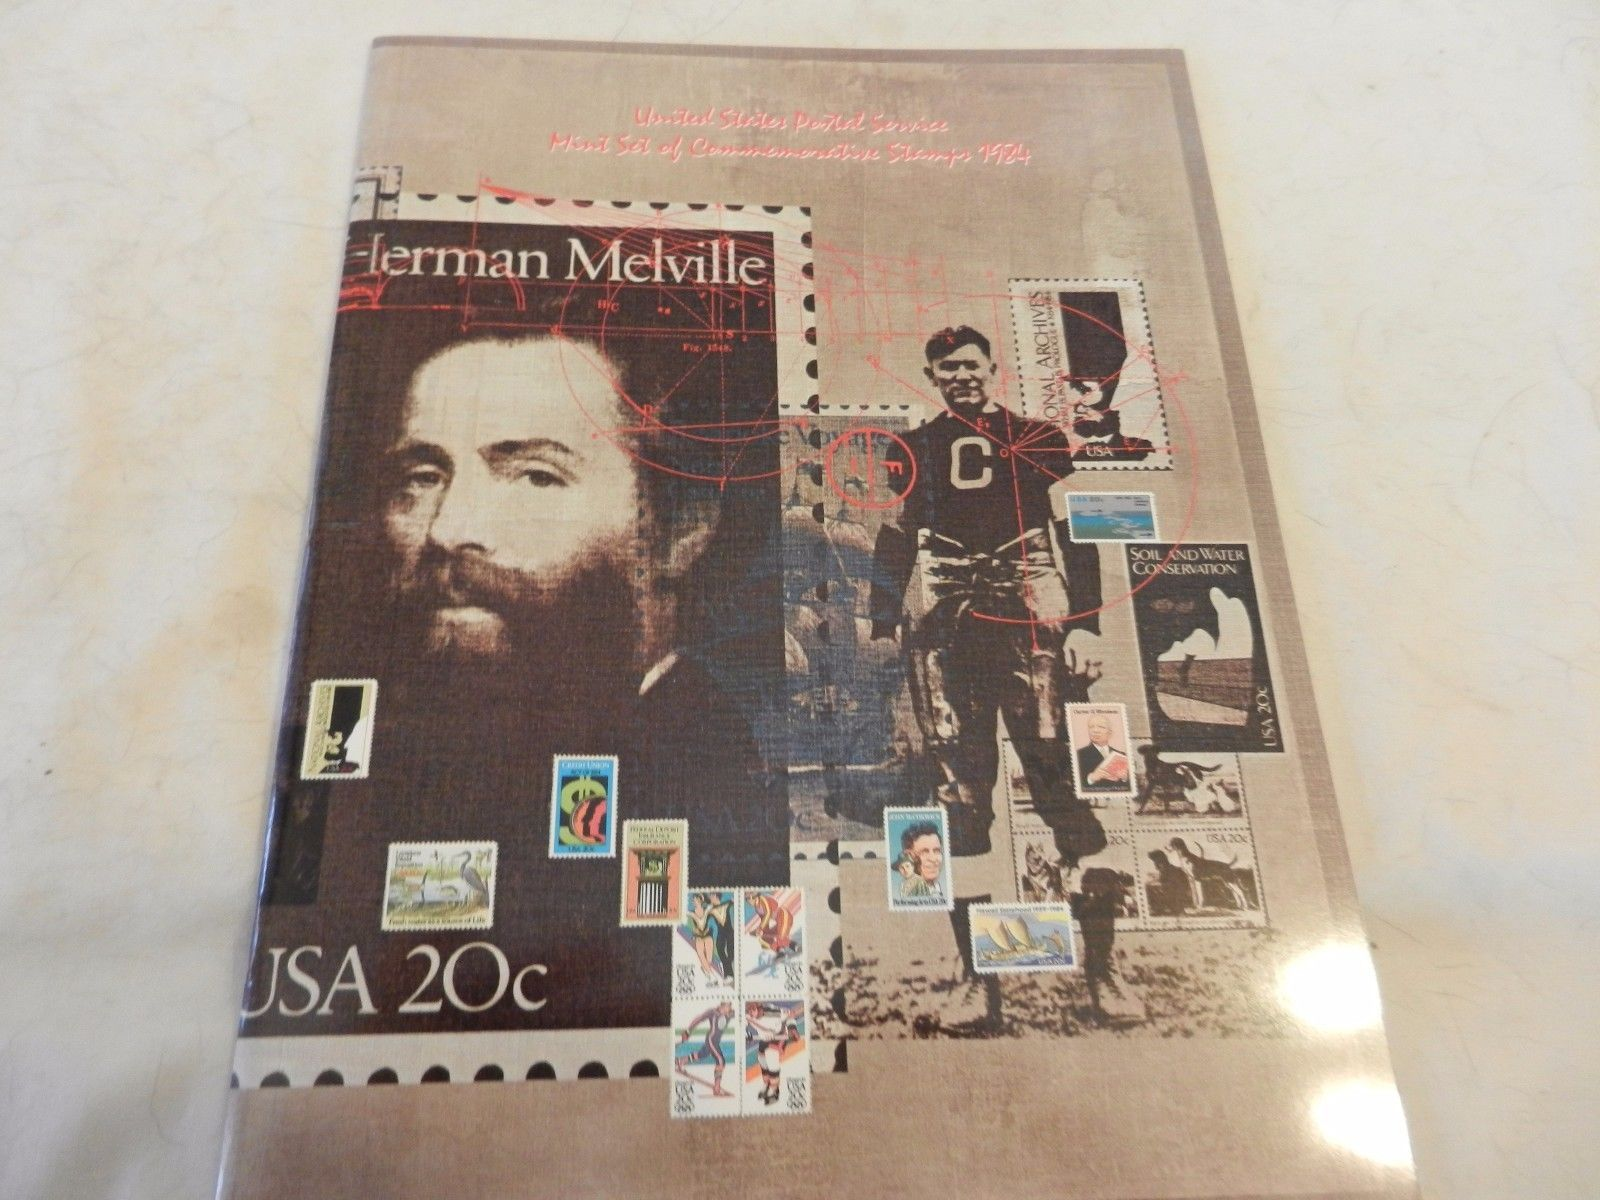 1984 USPS Mint Set of Commemorative Stamps Book Only no stamps